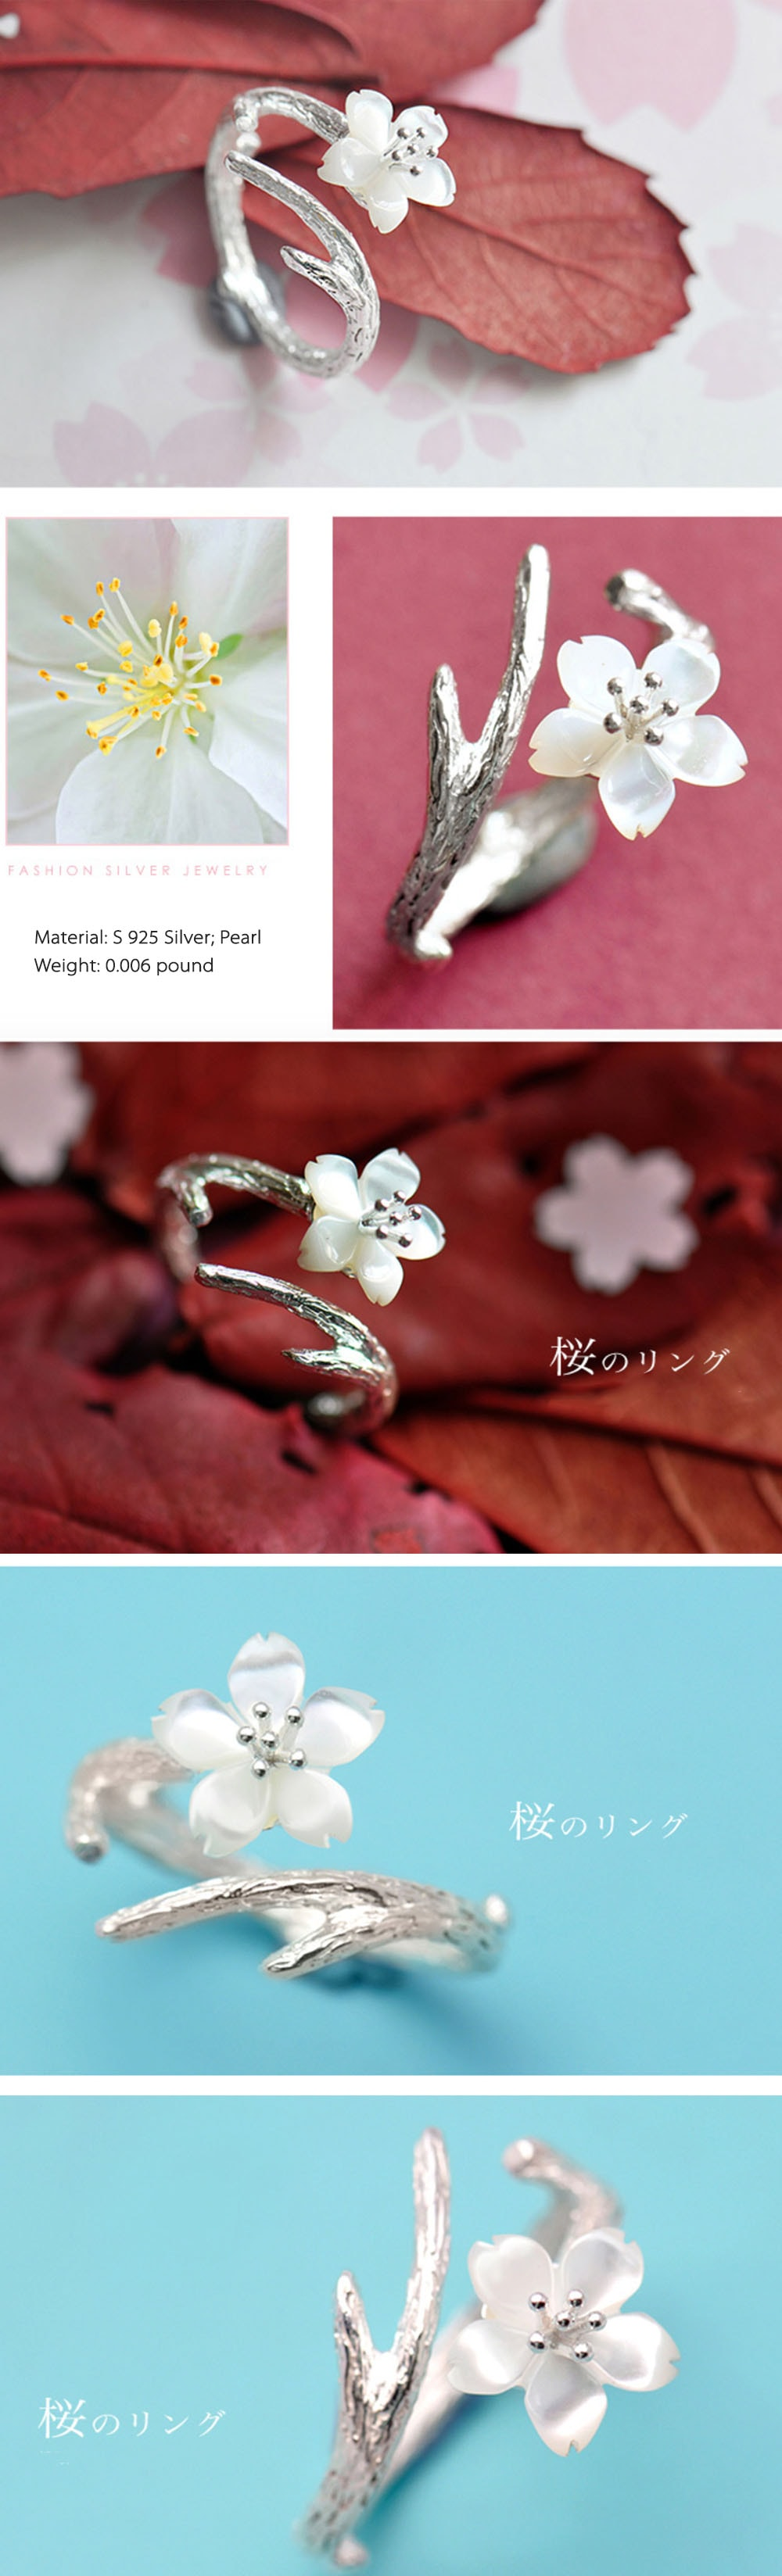 White Cherry Blossom Silver Ring Fashion Design